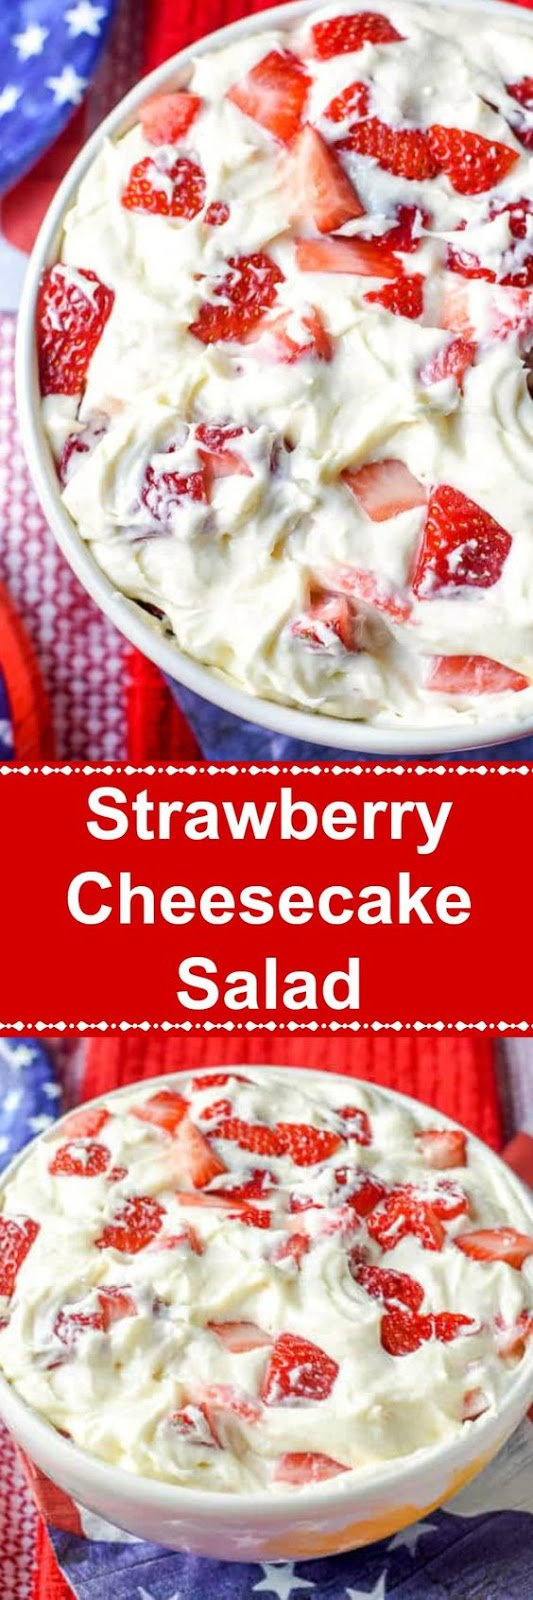 This Strawberry Cheesecake Salad is like a strawberry cheesecake in a bowl and makes a delicious and easy no bake dessert.